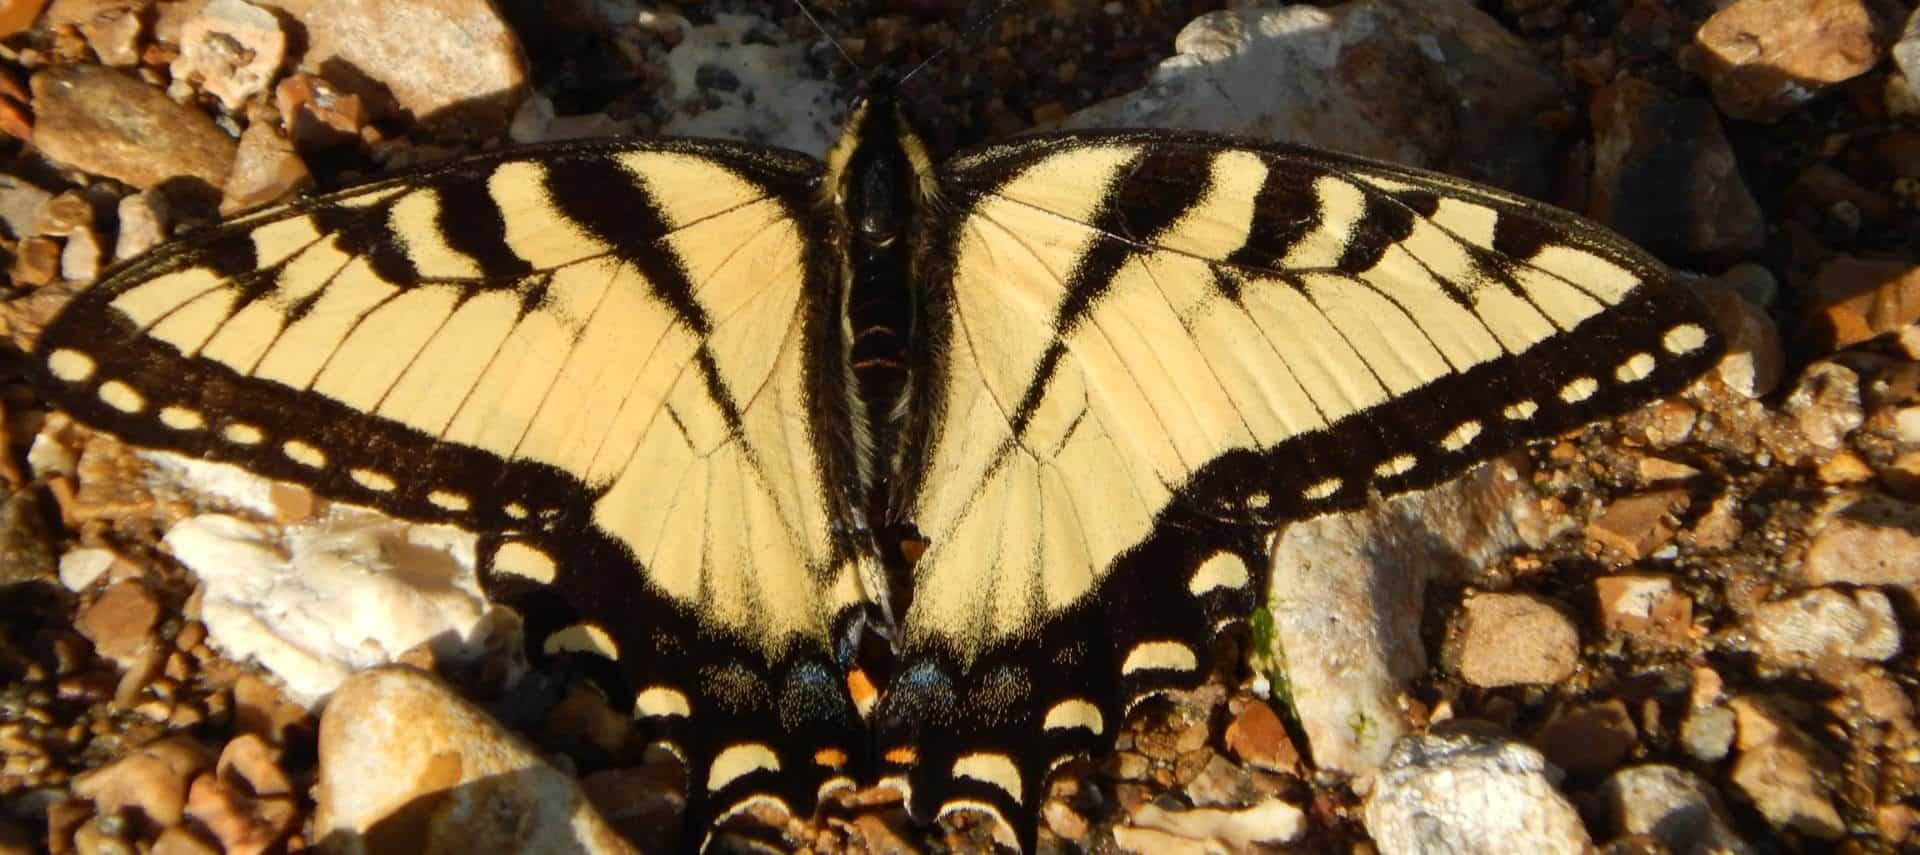 Close up view of yellow and black butterfly sitting on small pebbles